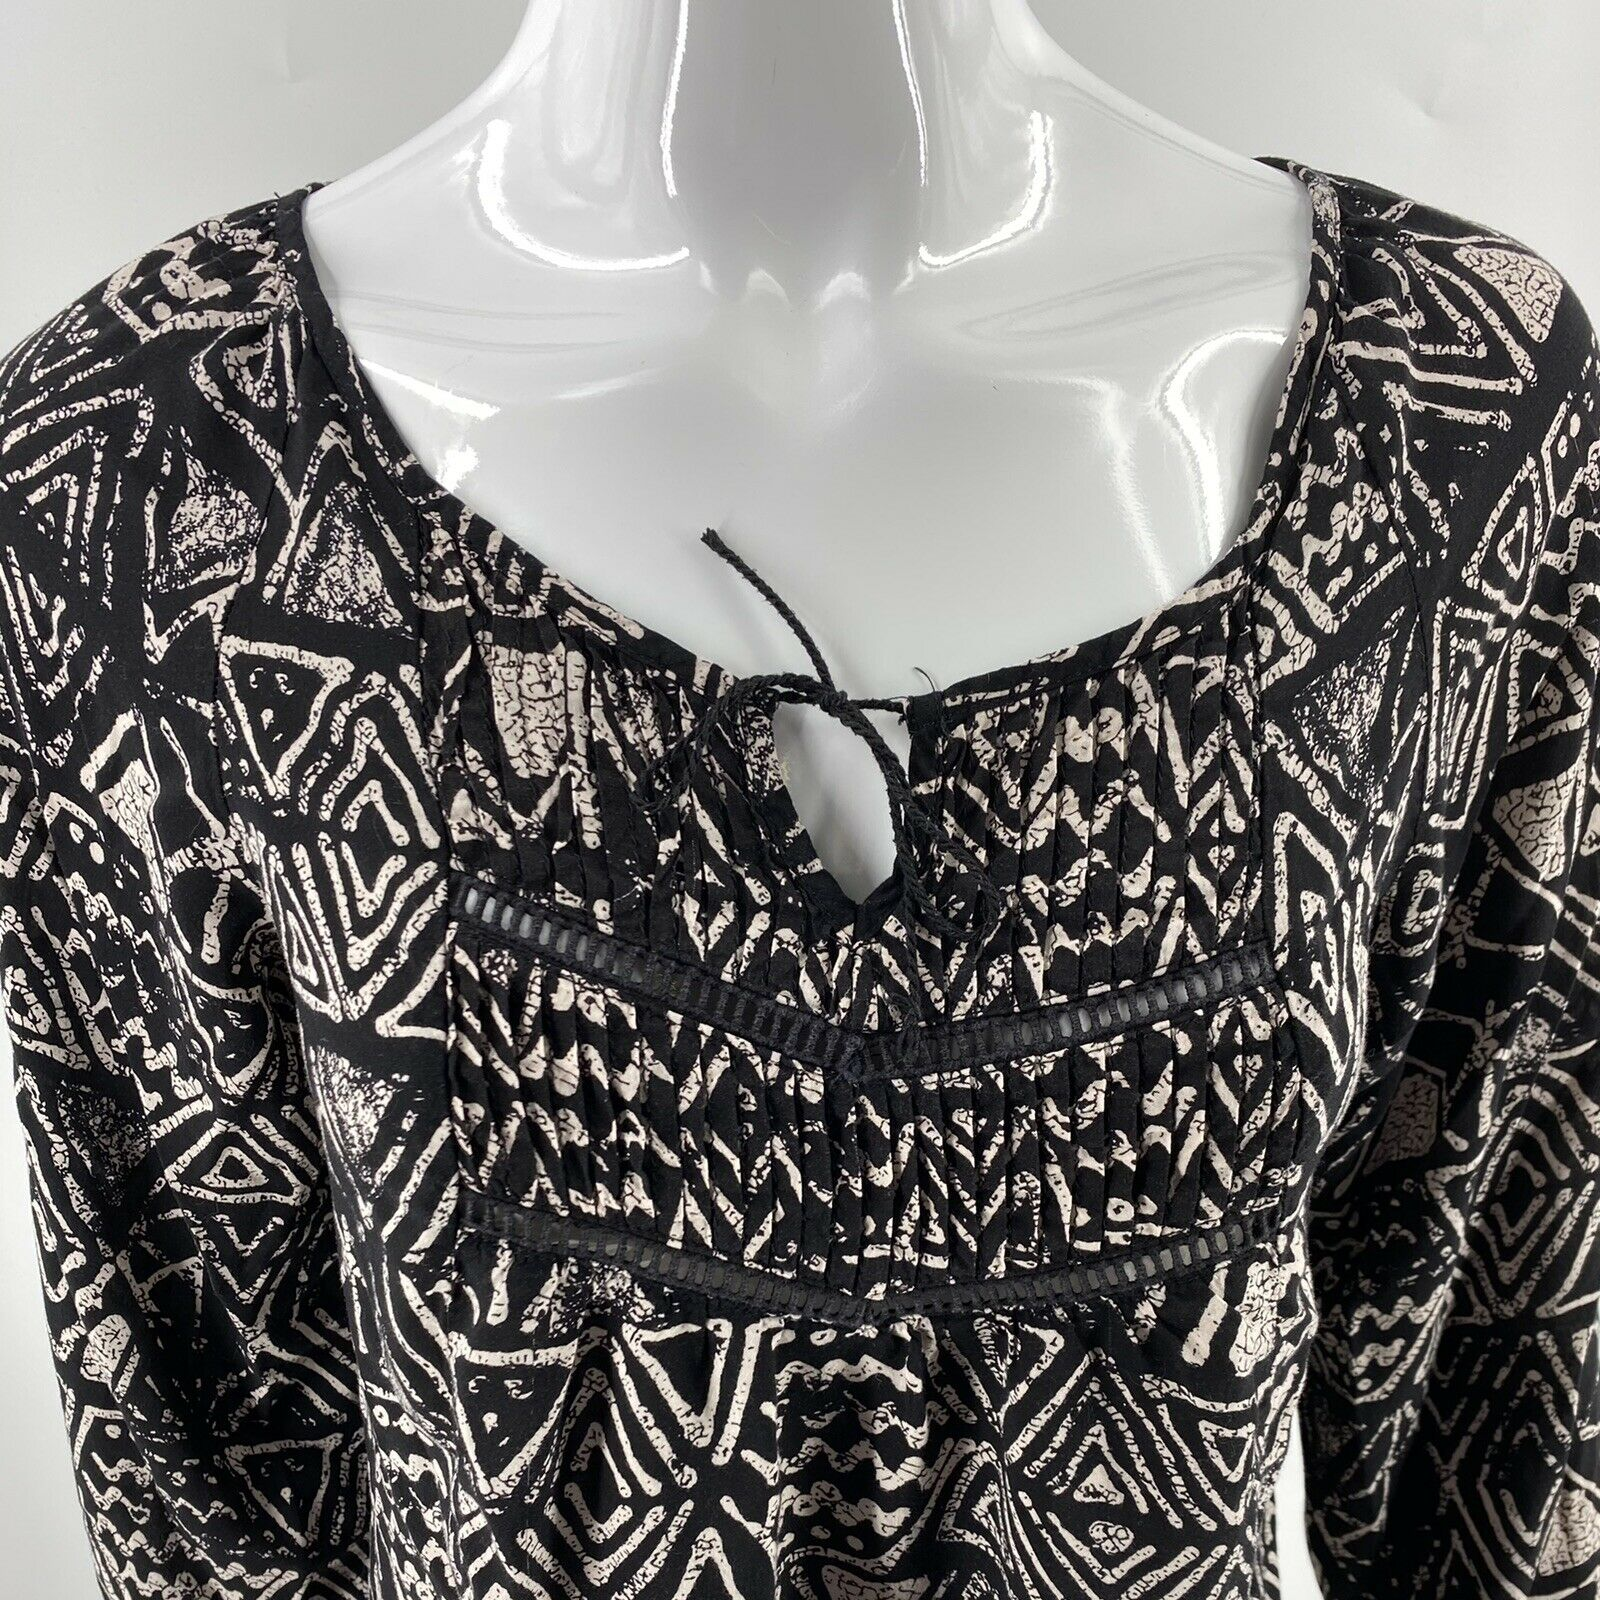 Product Image 1 - Mossimo Top Size Small Black